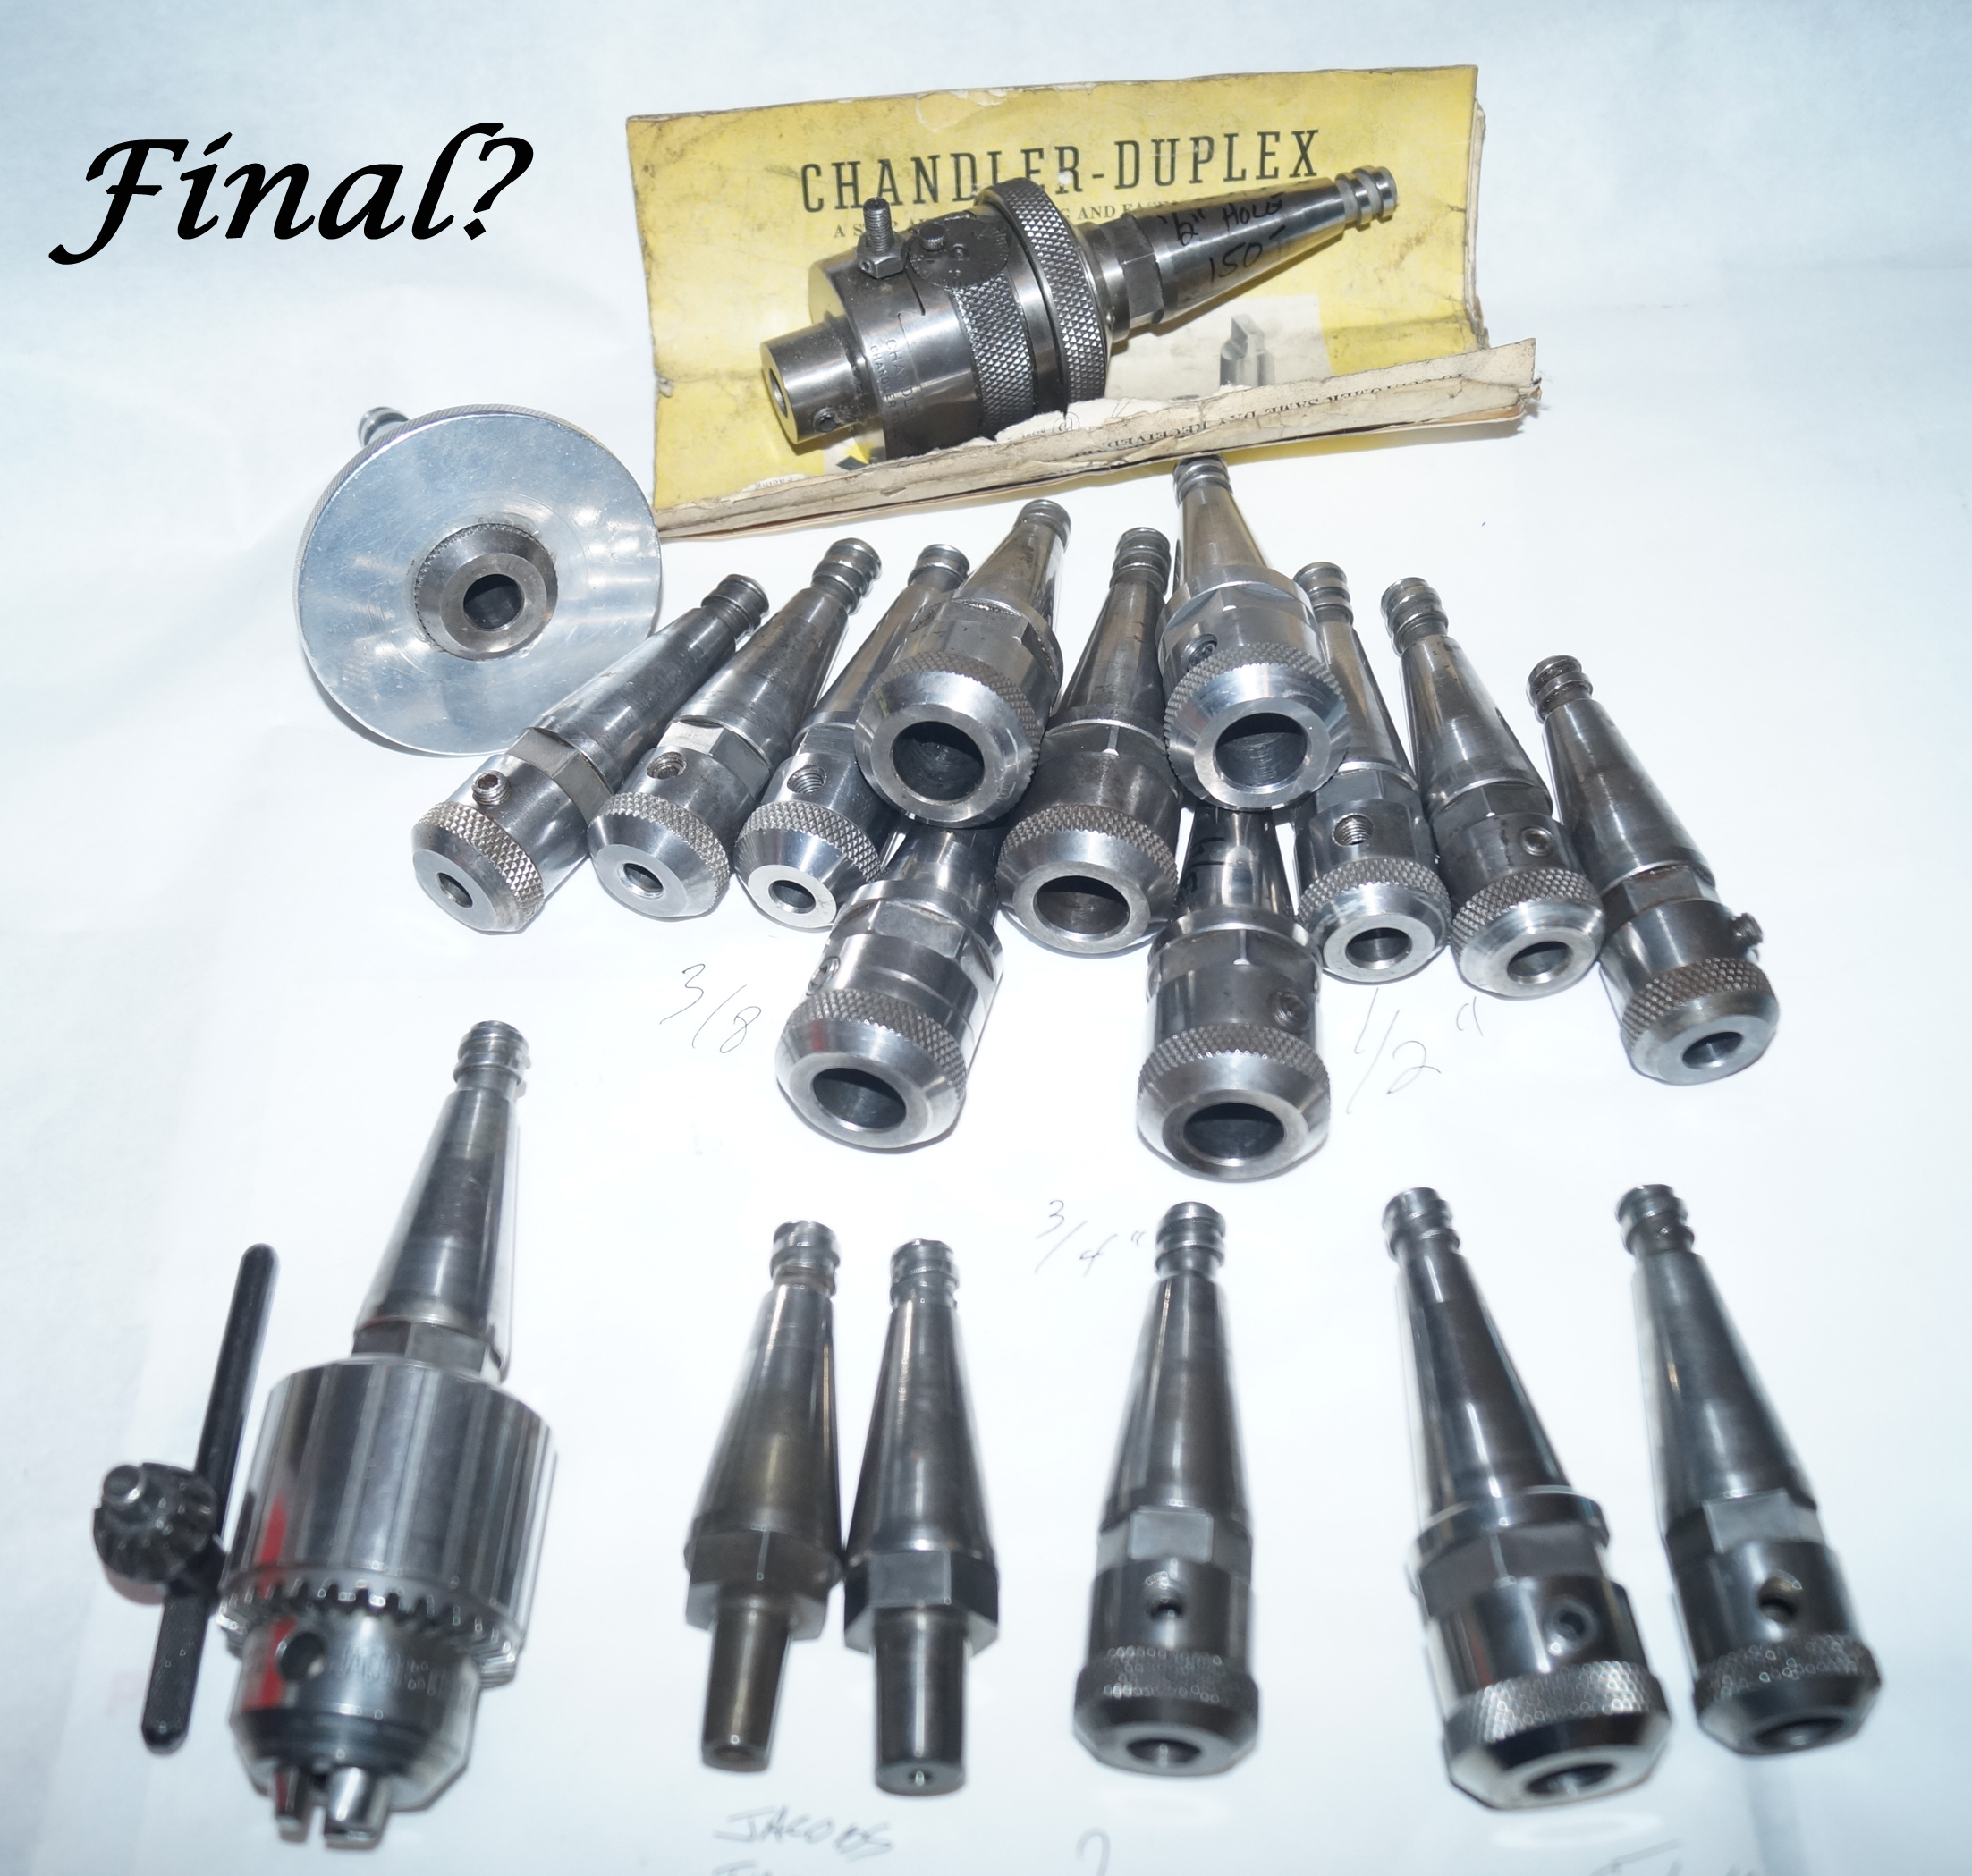 Moore Jig Bore Tooling Lot (19) Pieces - As Pictured